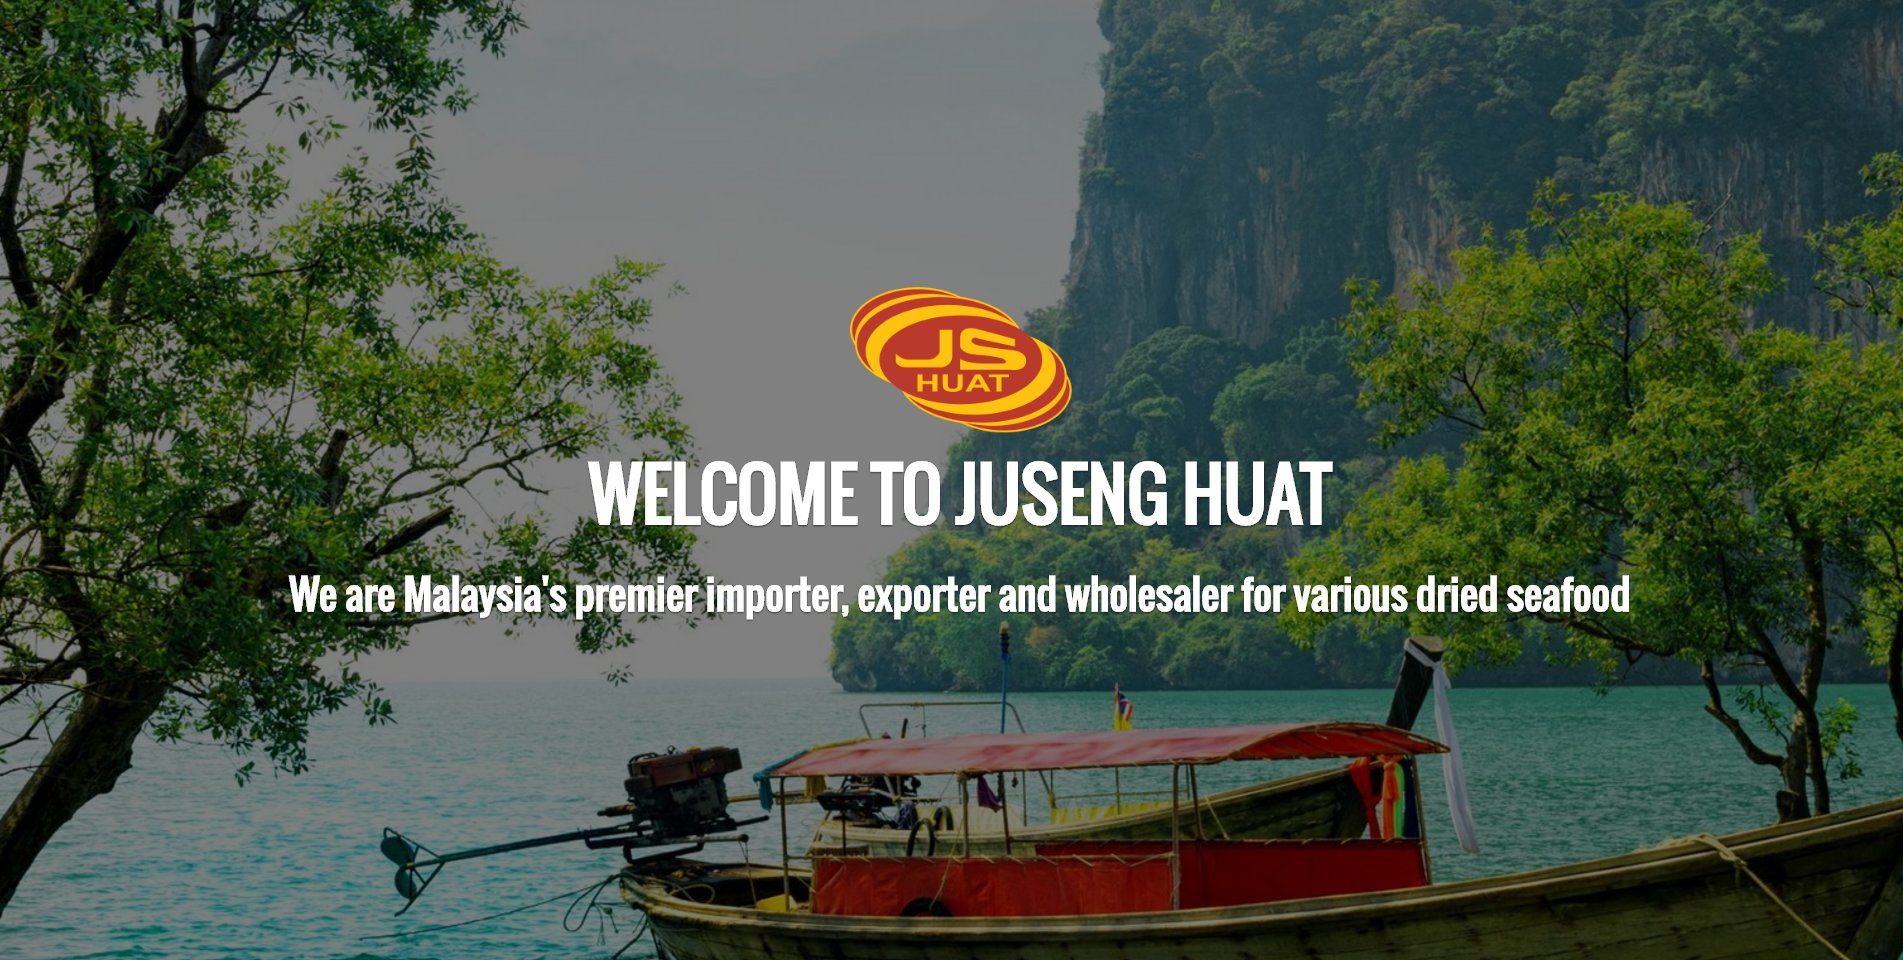 Juseng Huat - Malaysia's Leading Dried Seafood Wholesaler & Importer